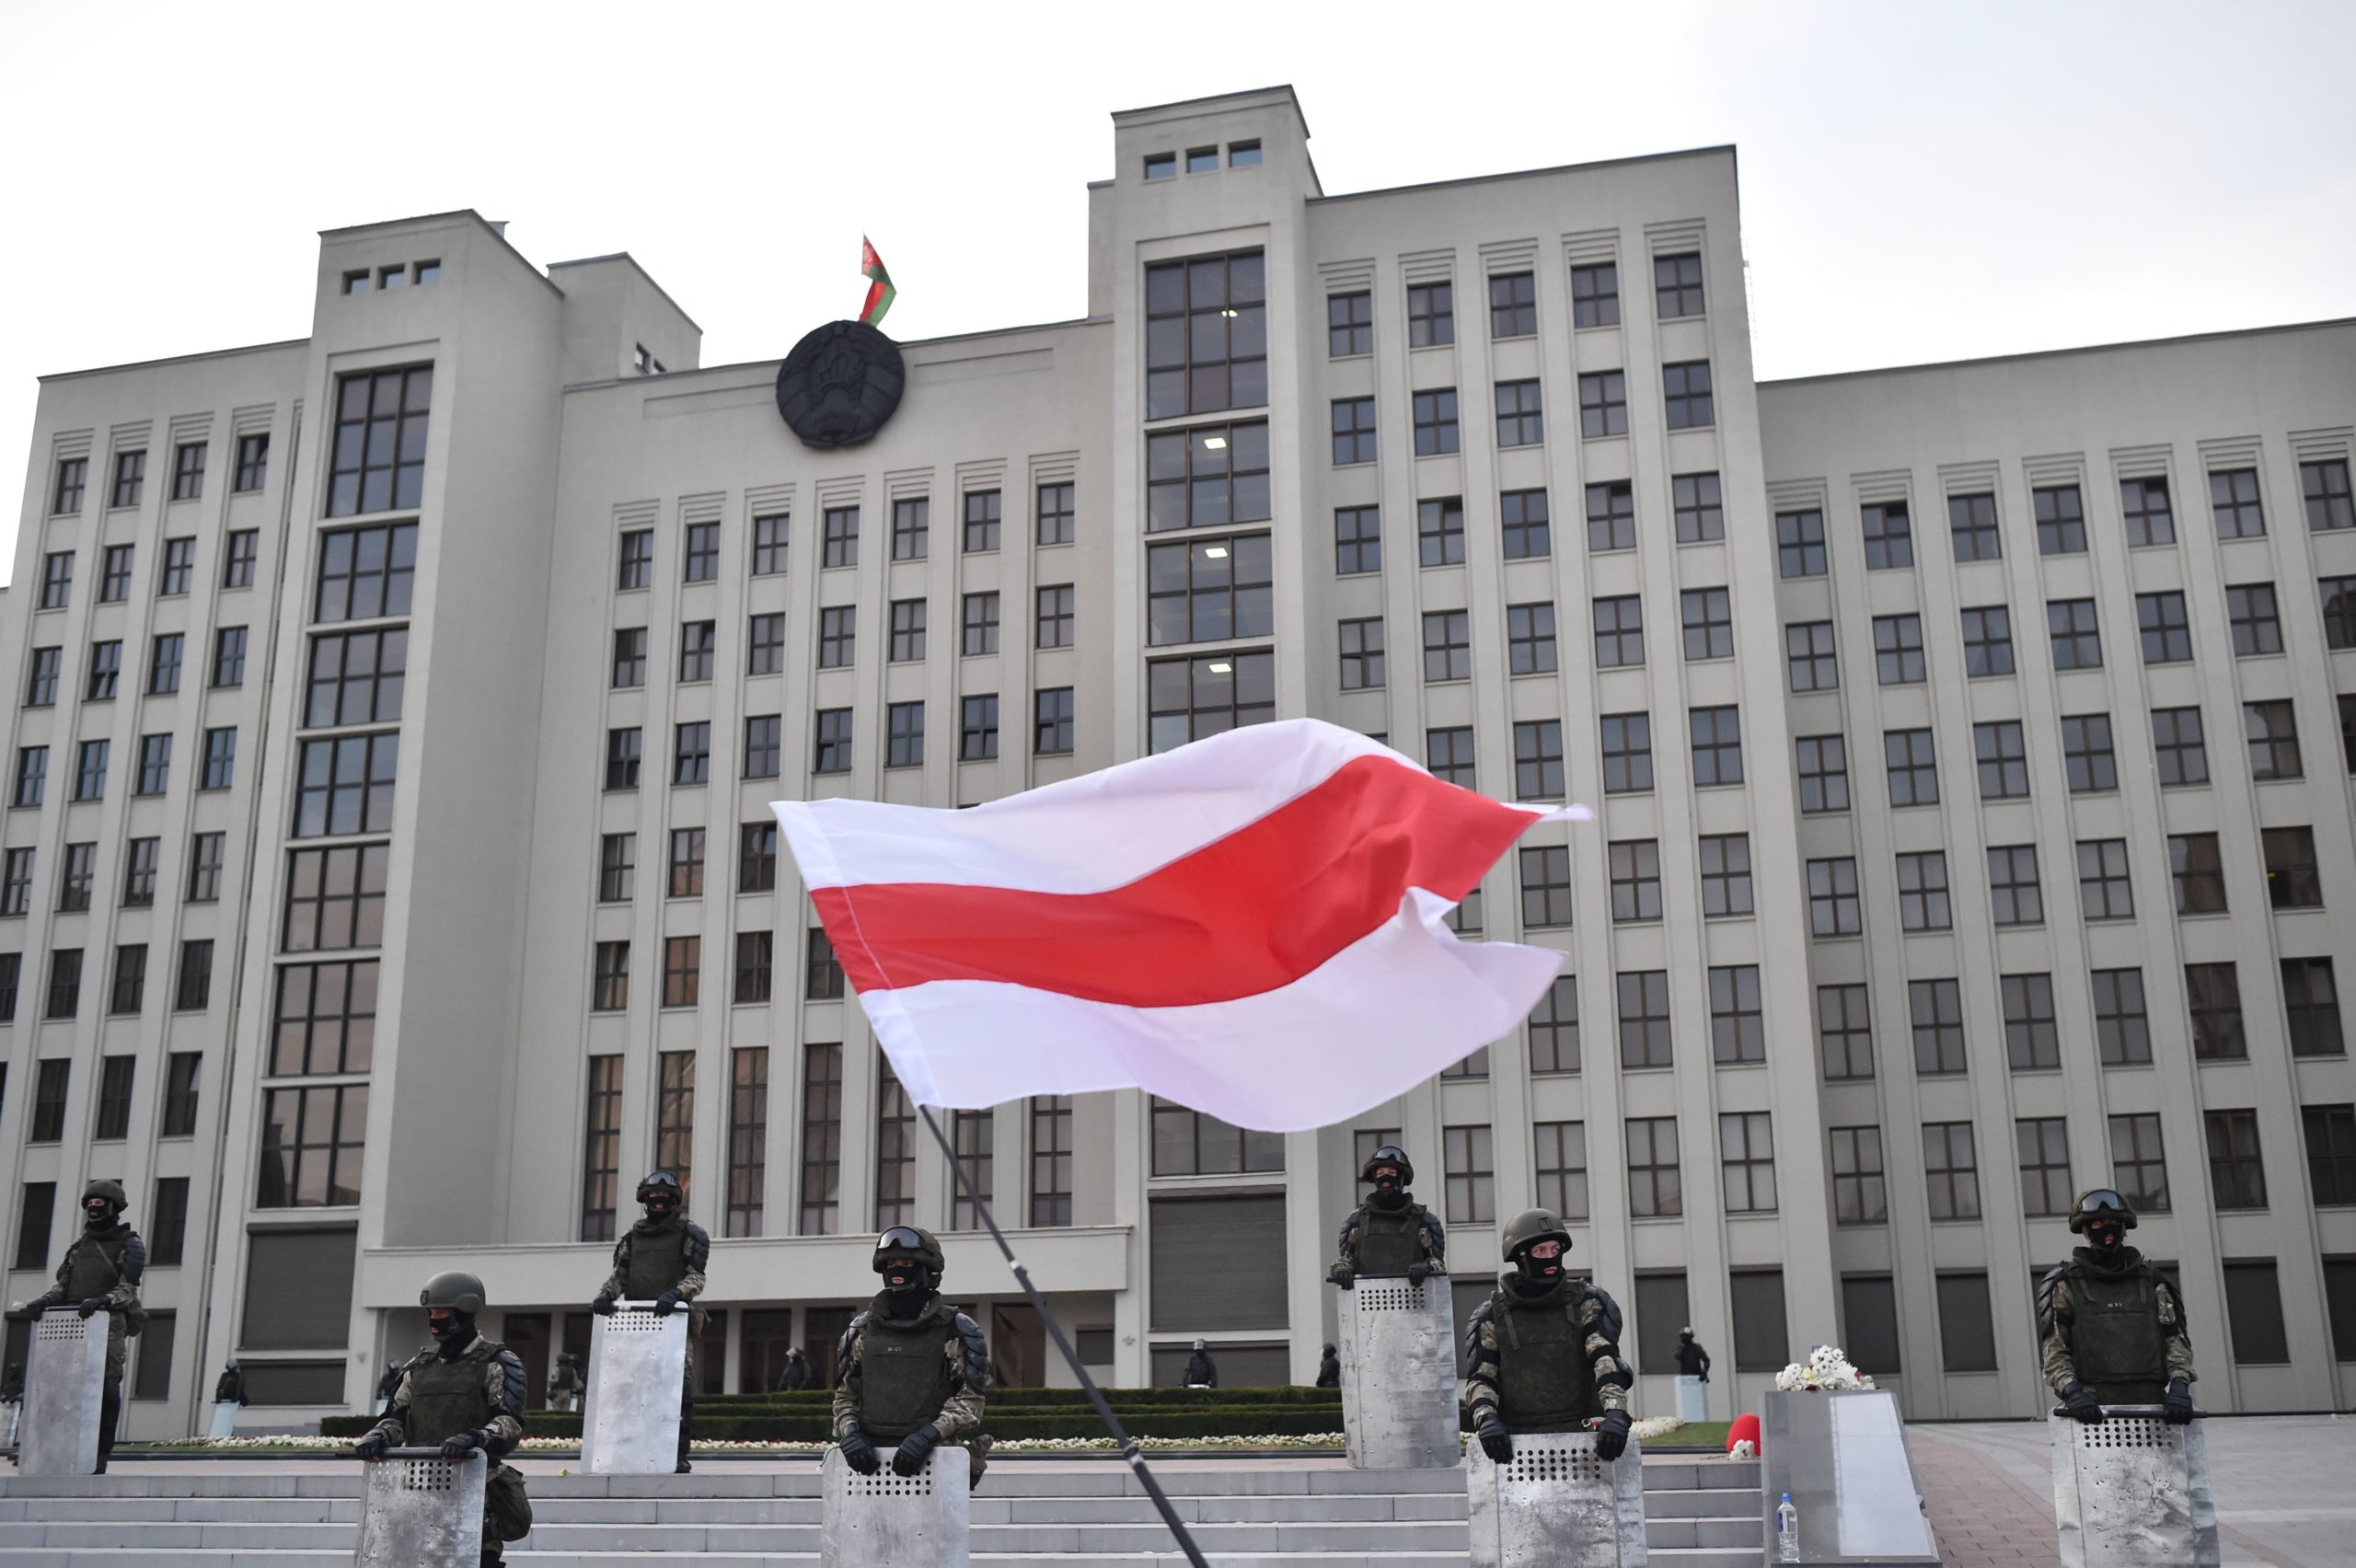 EU leaders agree to sanction Belarus and are open to democratic transition